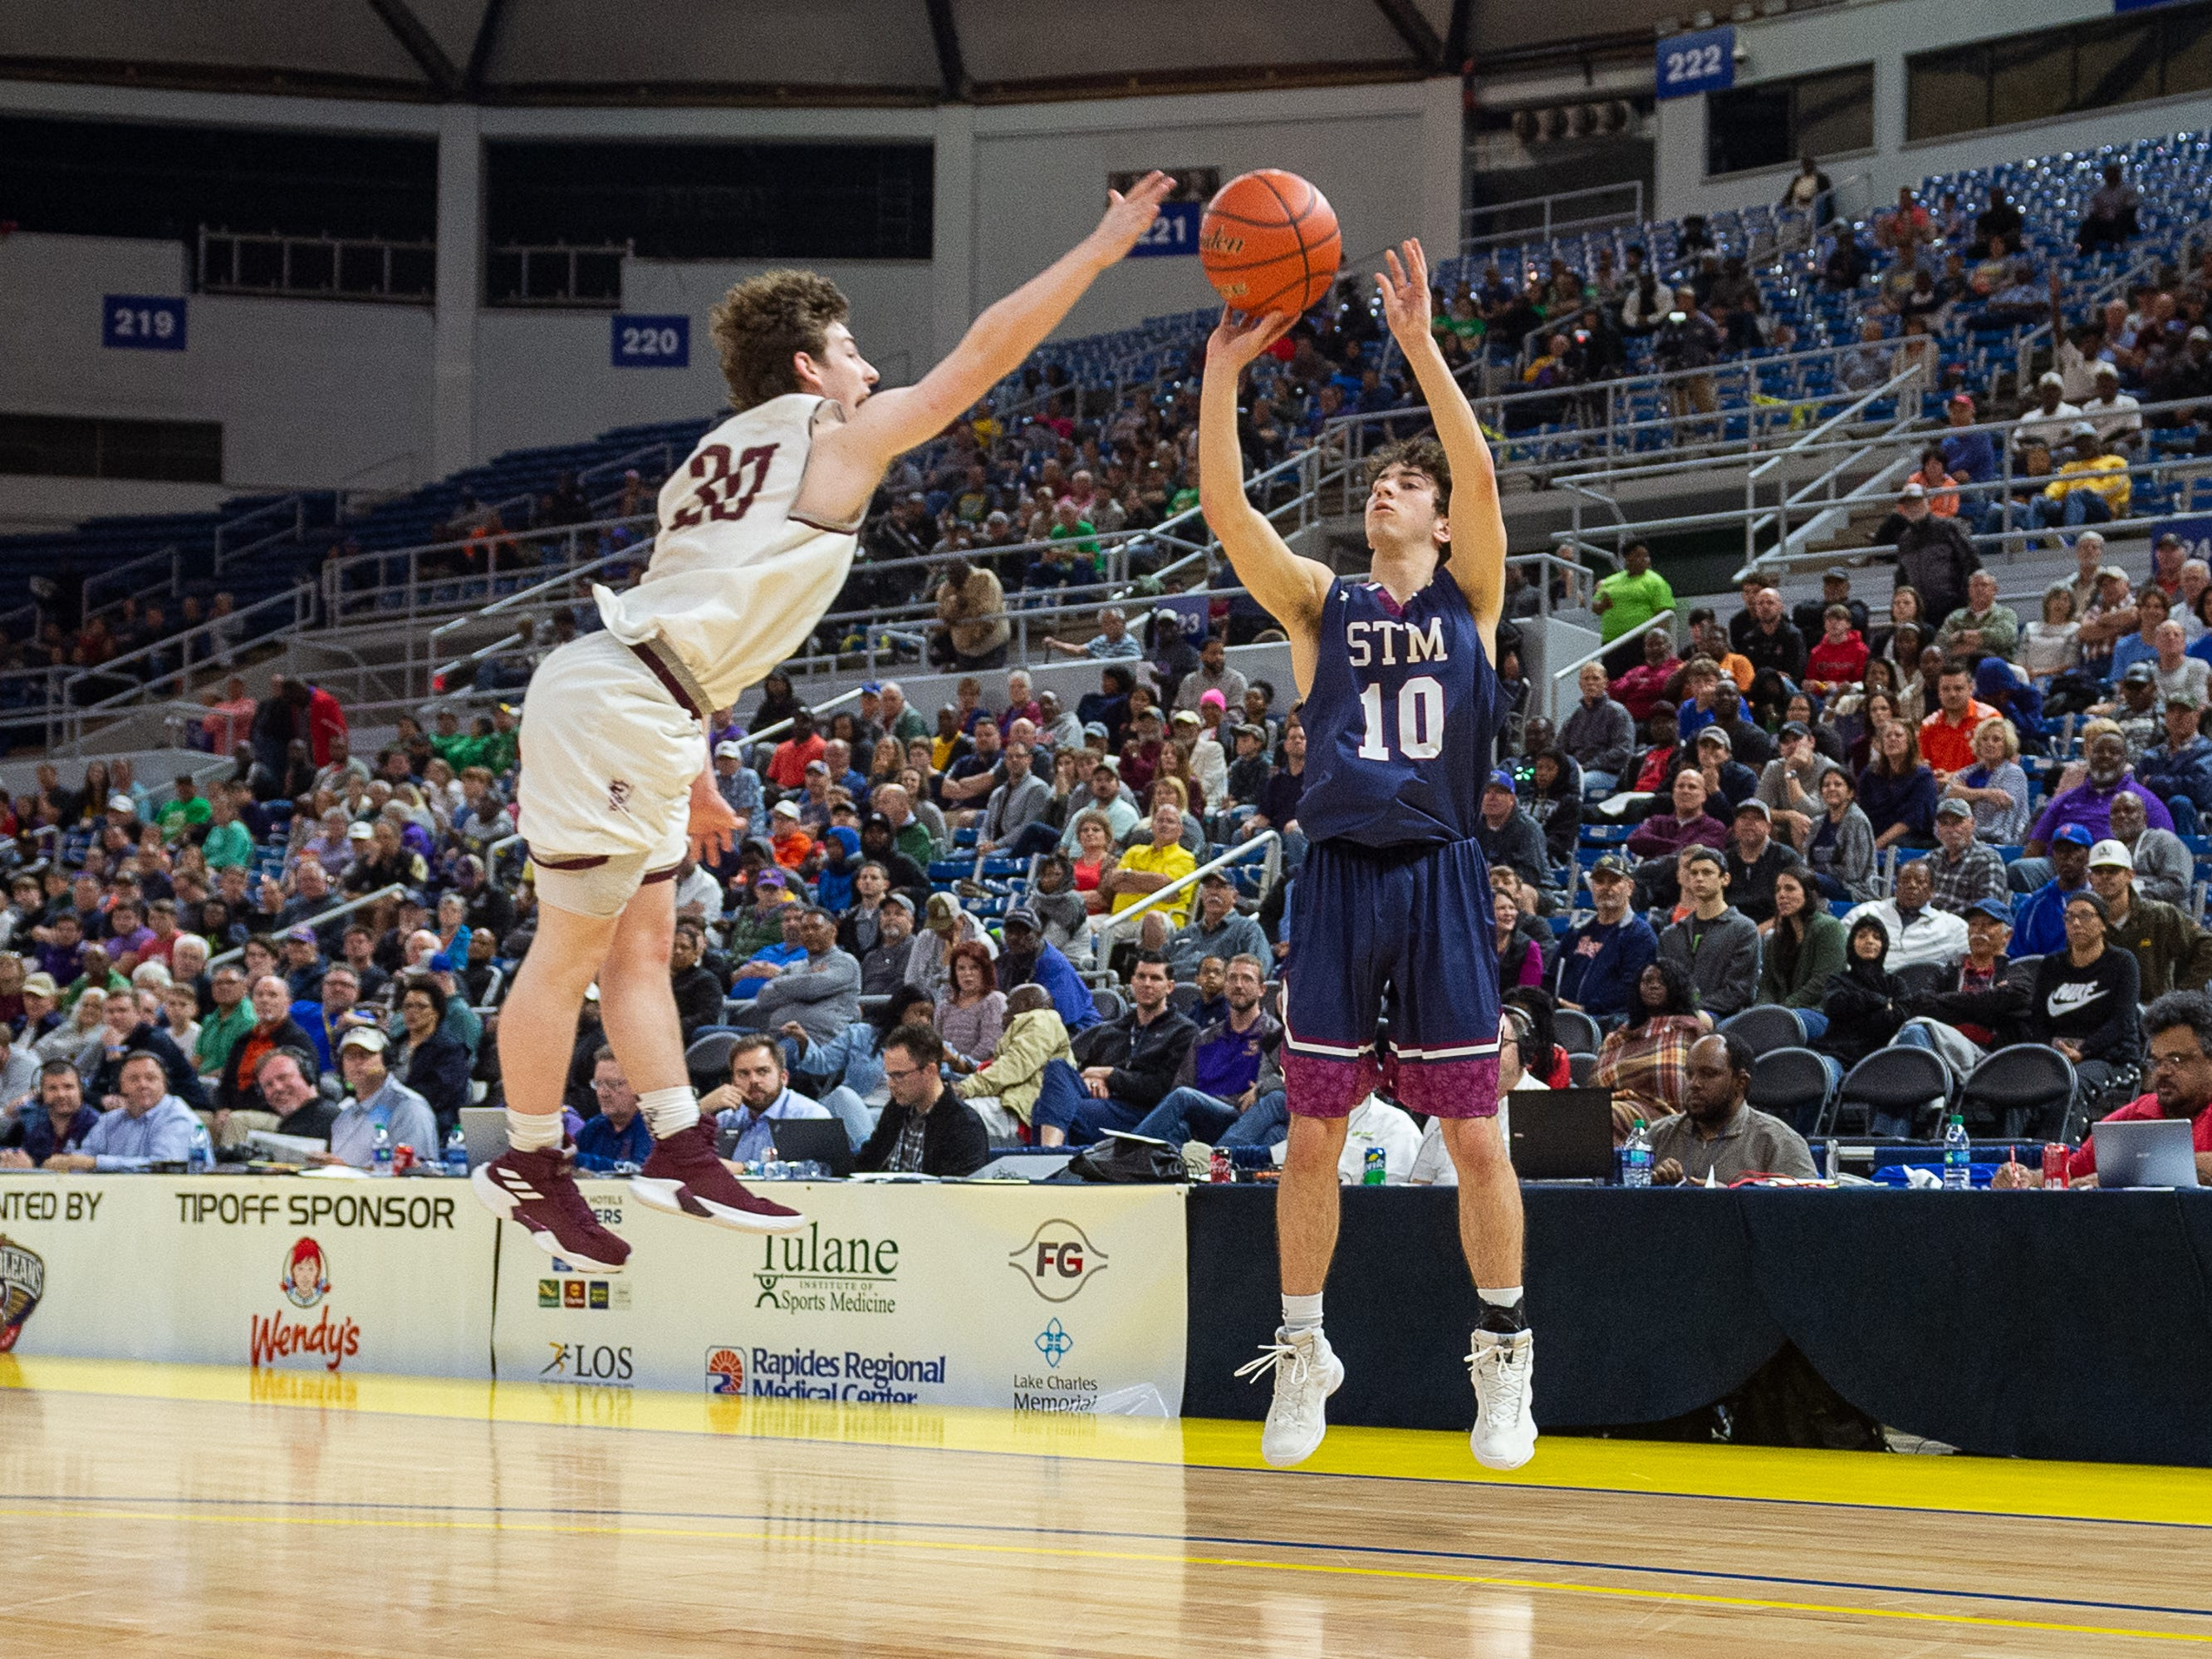 Reece Melancon shoots a three as The STM Cougars beat DeLaSalle in double overtime to win the Allstate Sugar Bowl/LHSAA Boys' Marsh Madness Div II State Championship. Saturday, March 9, 2019.